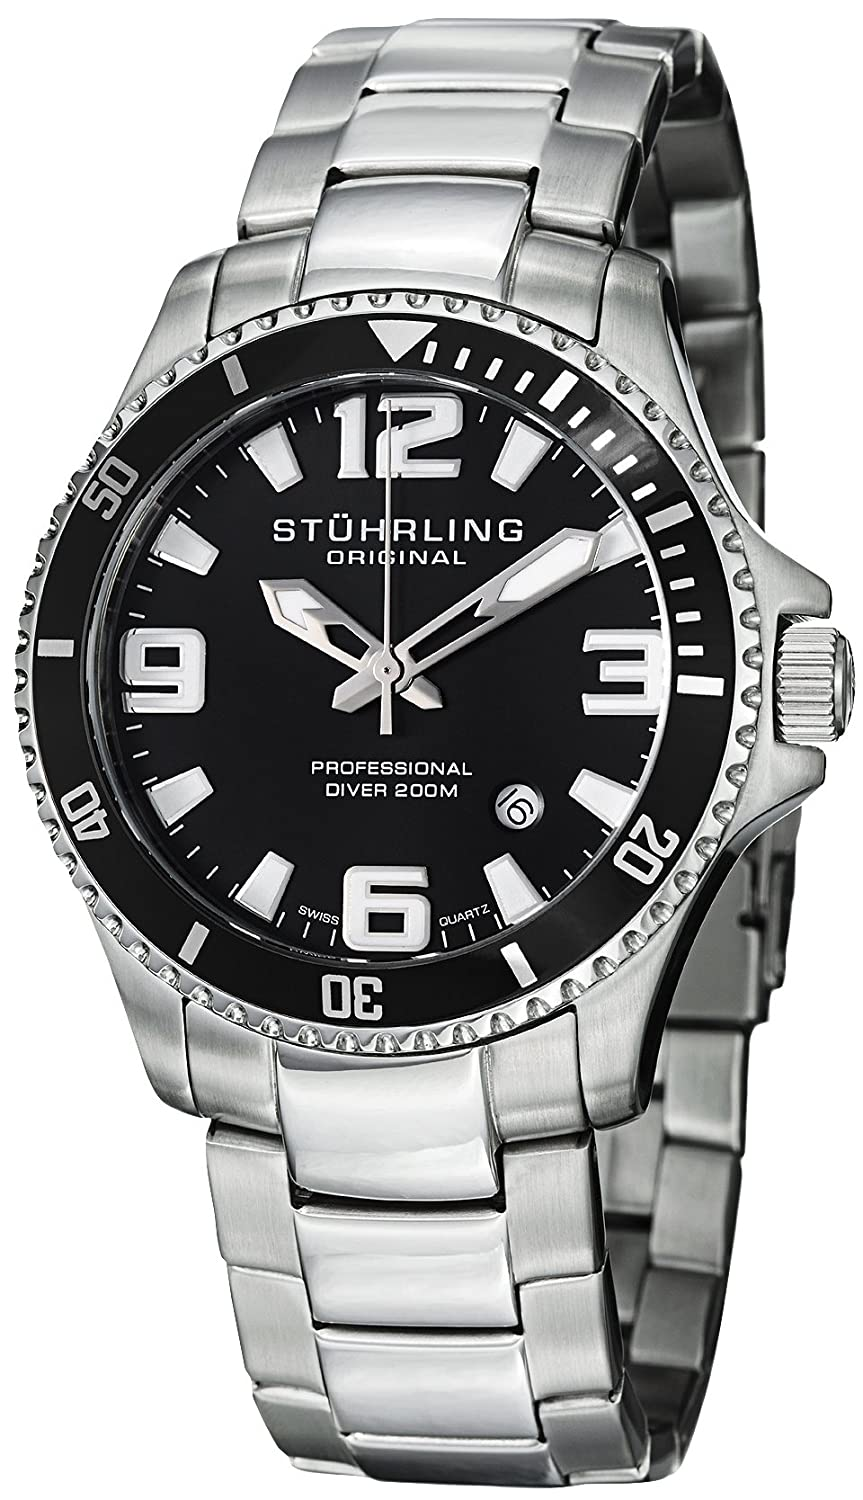 Stuhrling Original Men's 395.33B11 Aquadiver Regatta Champion Professional Diver Swiss Quartz Date Black Bezel Watch $49.99